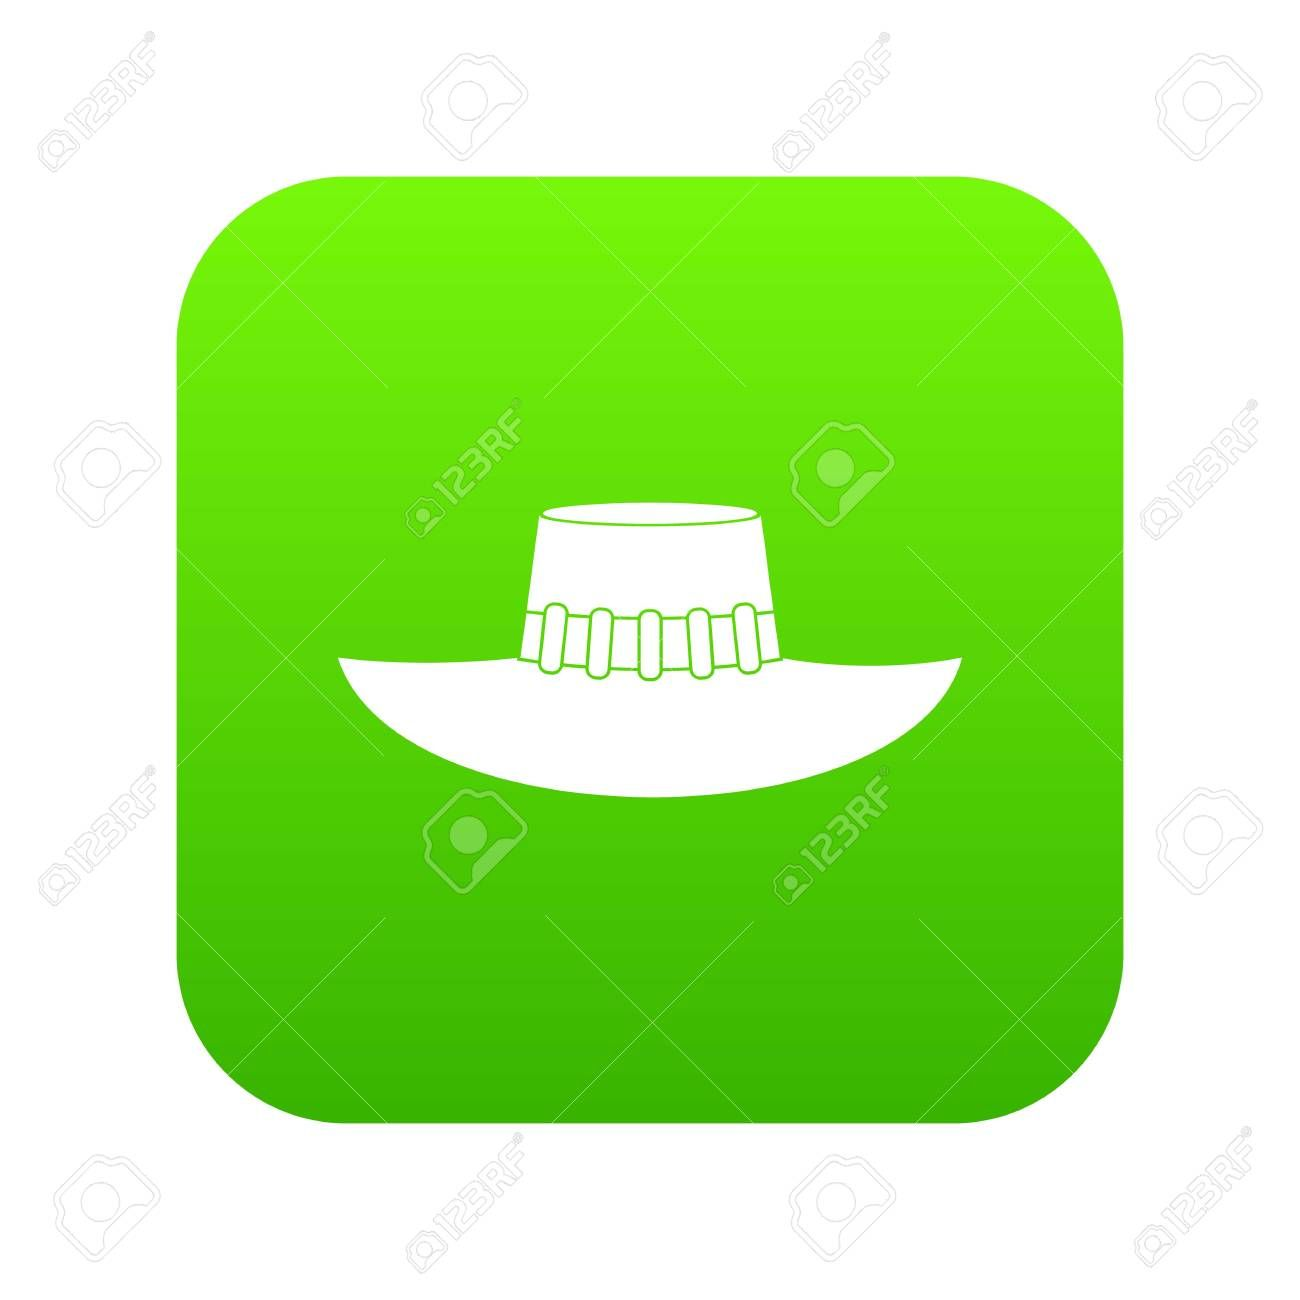 Woman hat icon in green square on white background